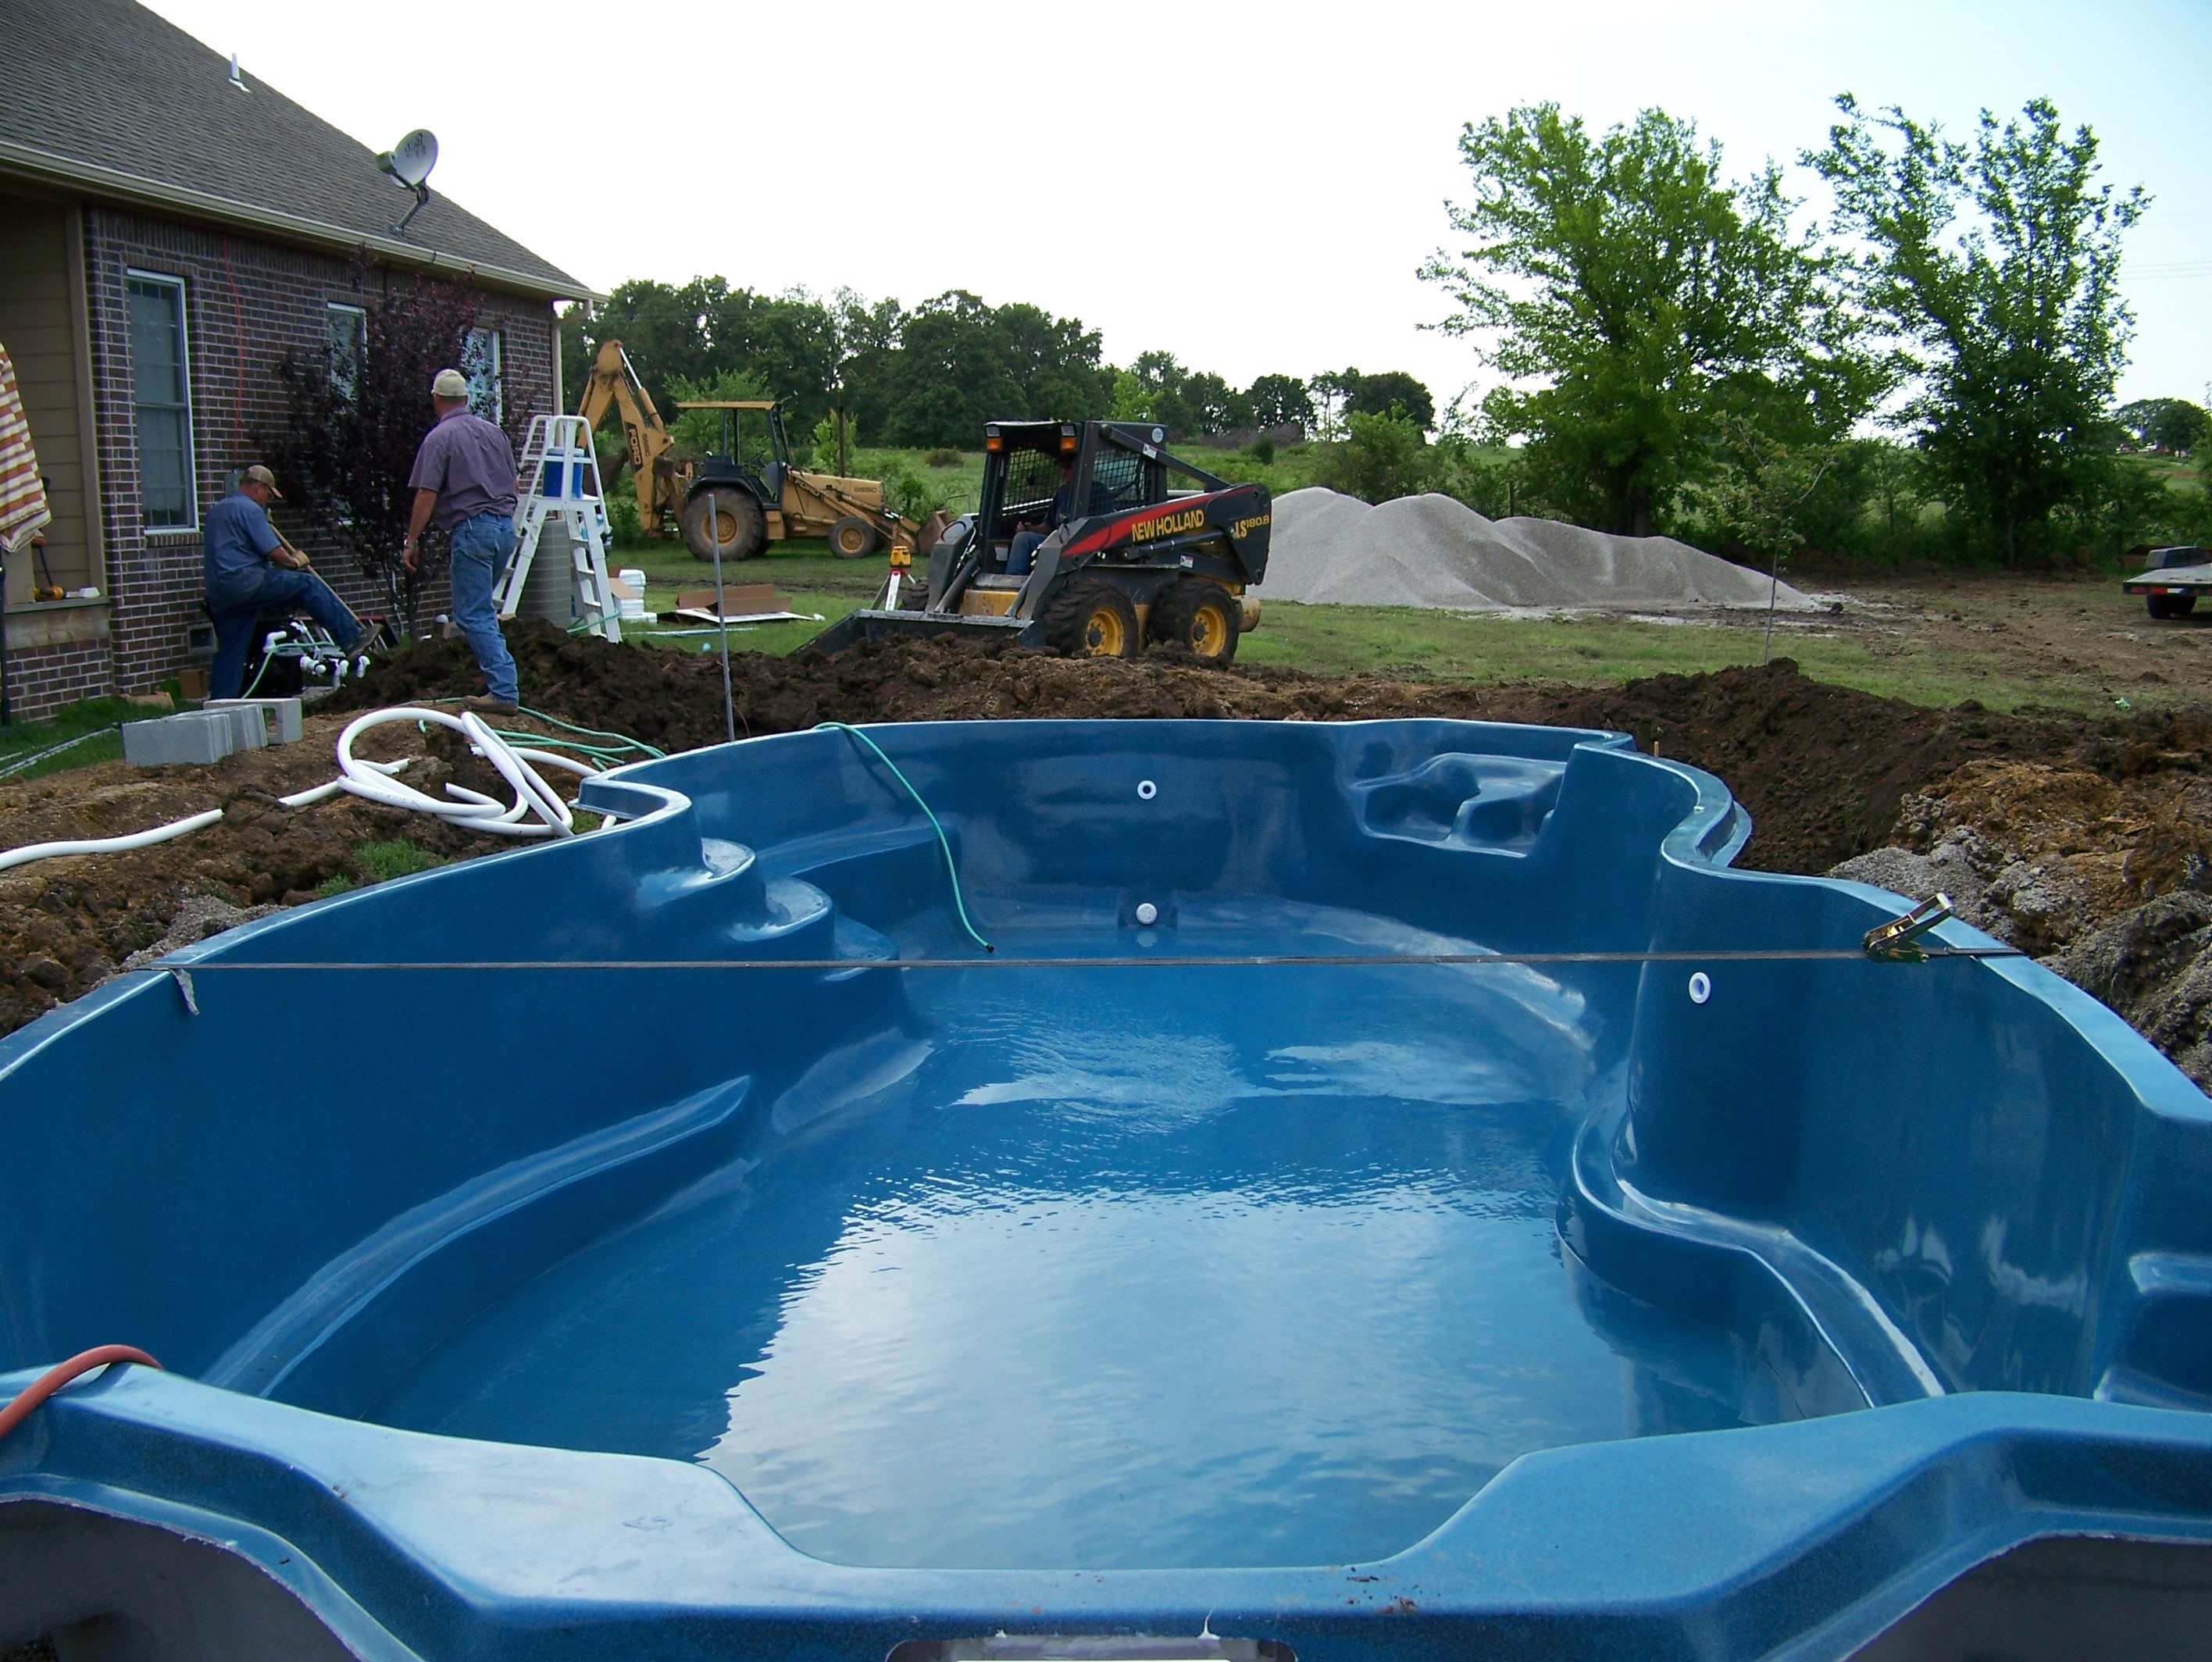 Fiberglass pools tulsa ok swimming pool contractor and - Swimming pool contractors oklahoma city ...